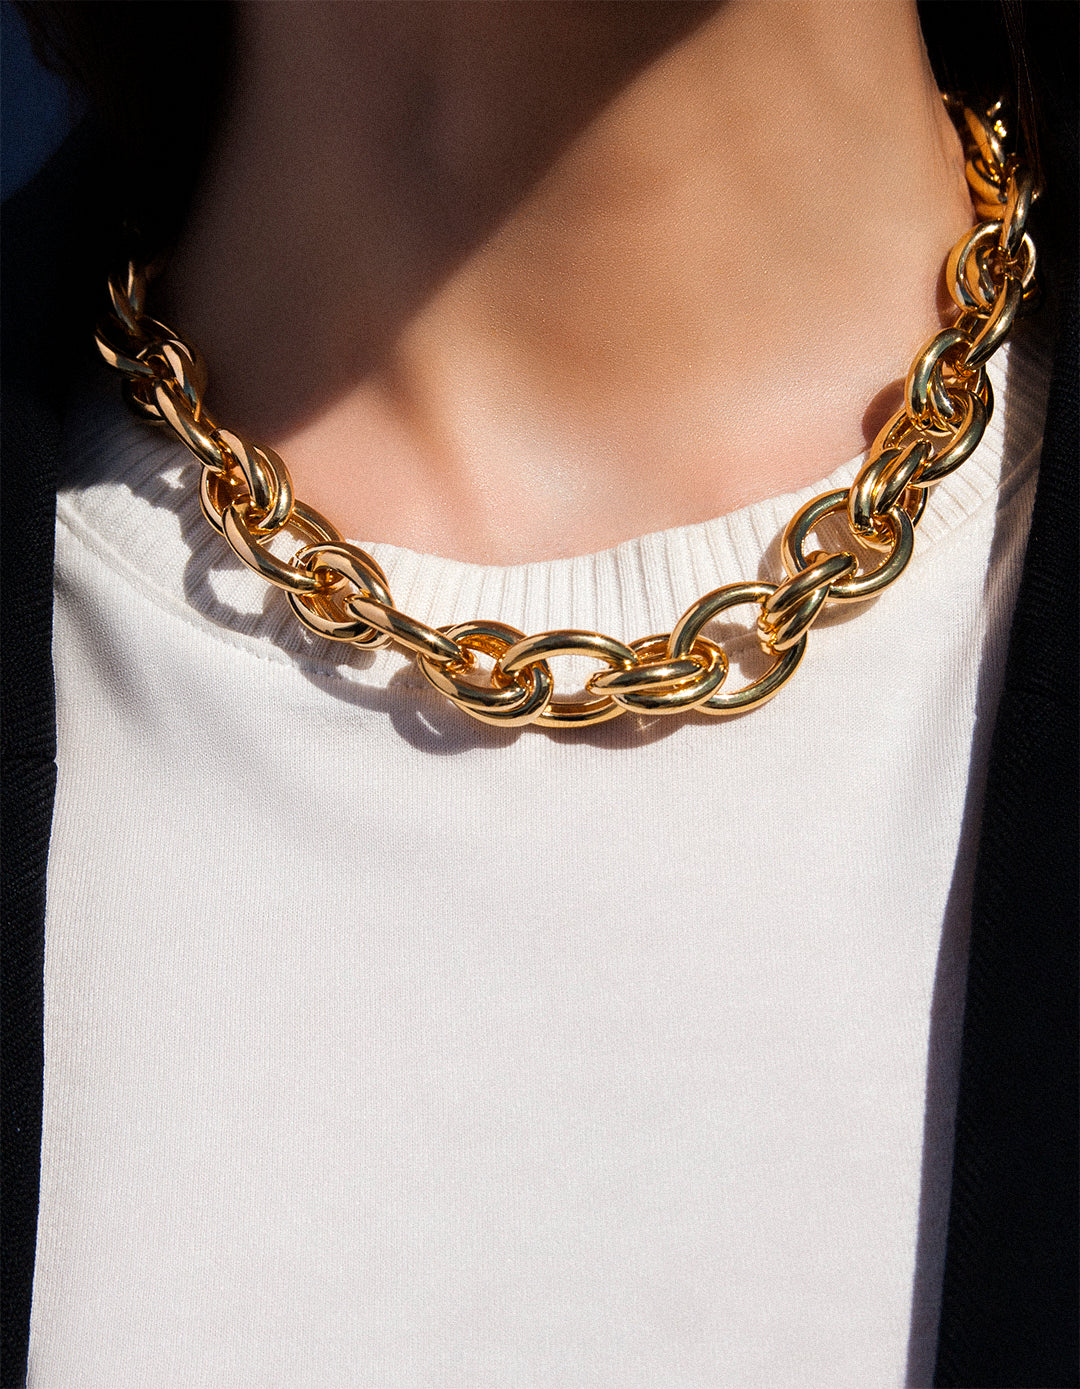 Timeless Chain Necklace - Charlotte Bonde